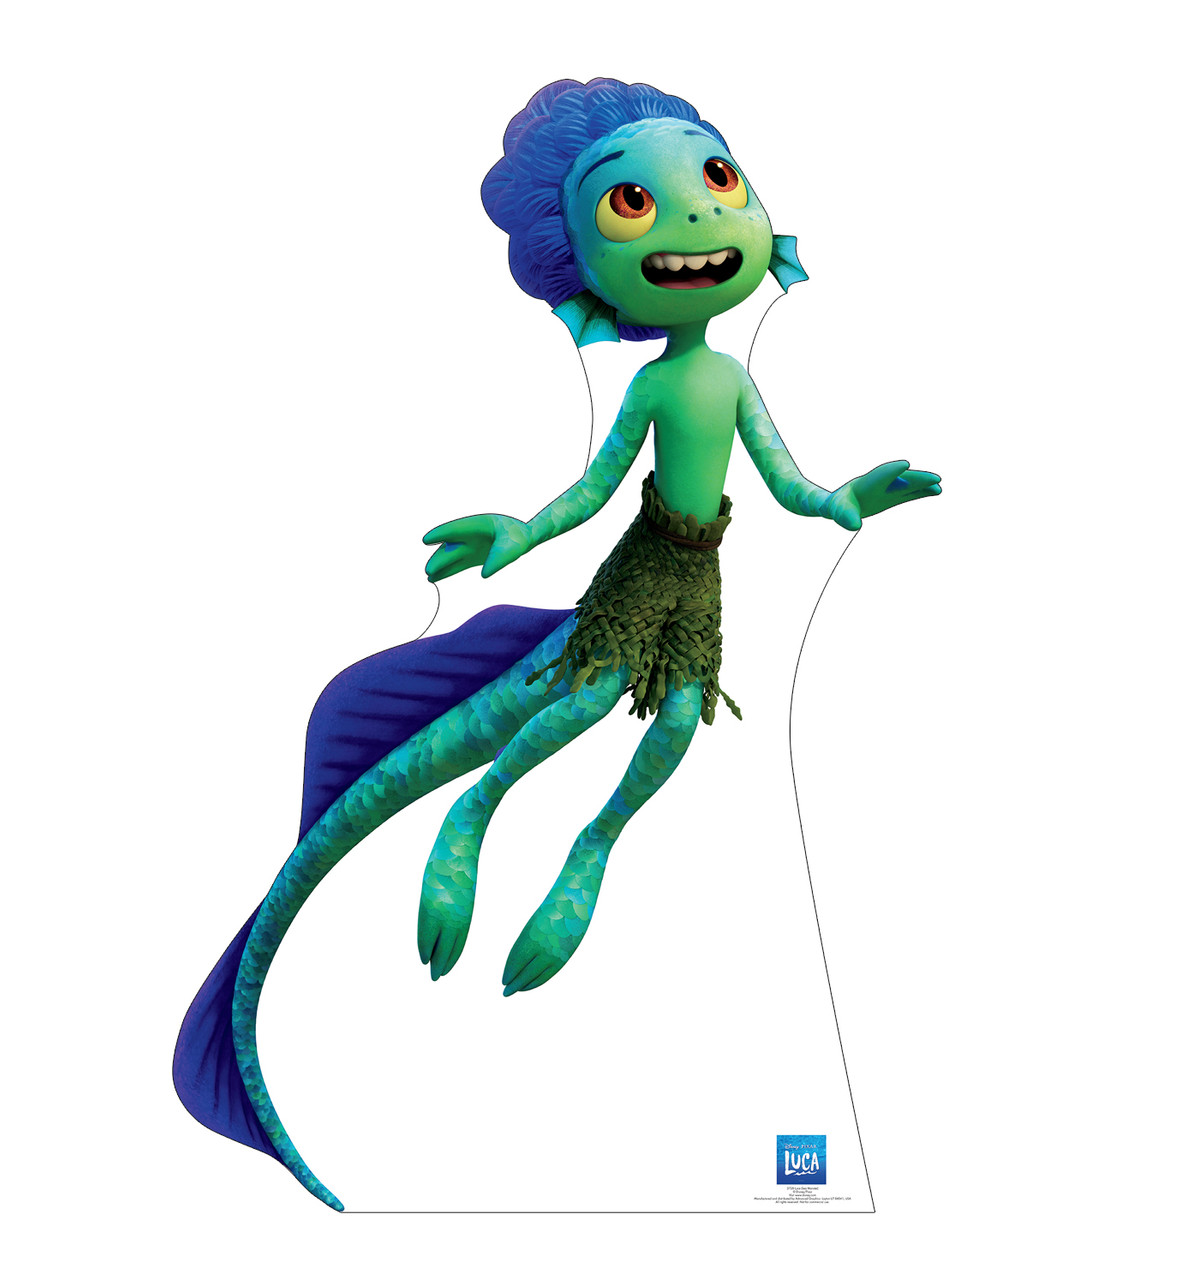 Life-size cardboard standee of Luca Sea Monster.